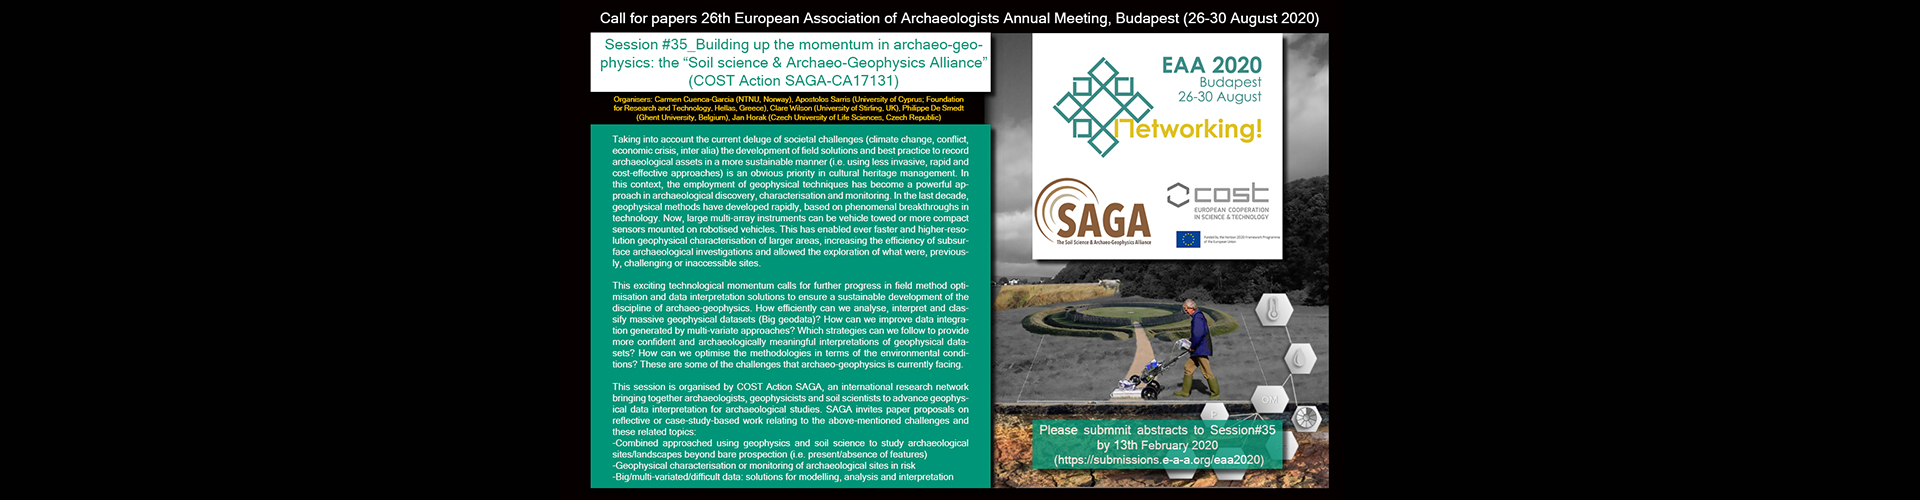 ***COST Action SAGA Call for papers for #EAA2020: https://submissions.e-a-a.org/eaa2020***